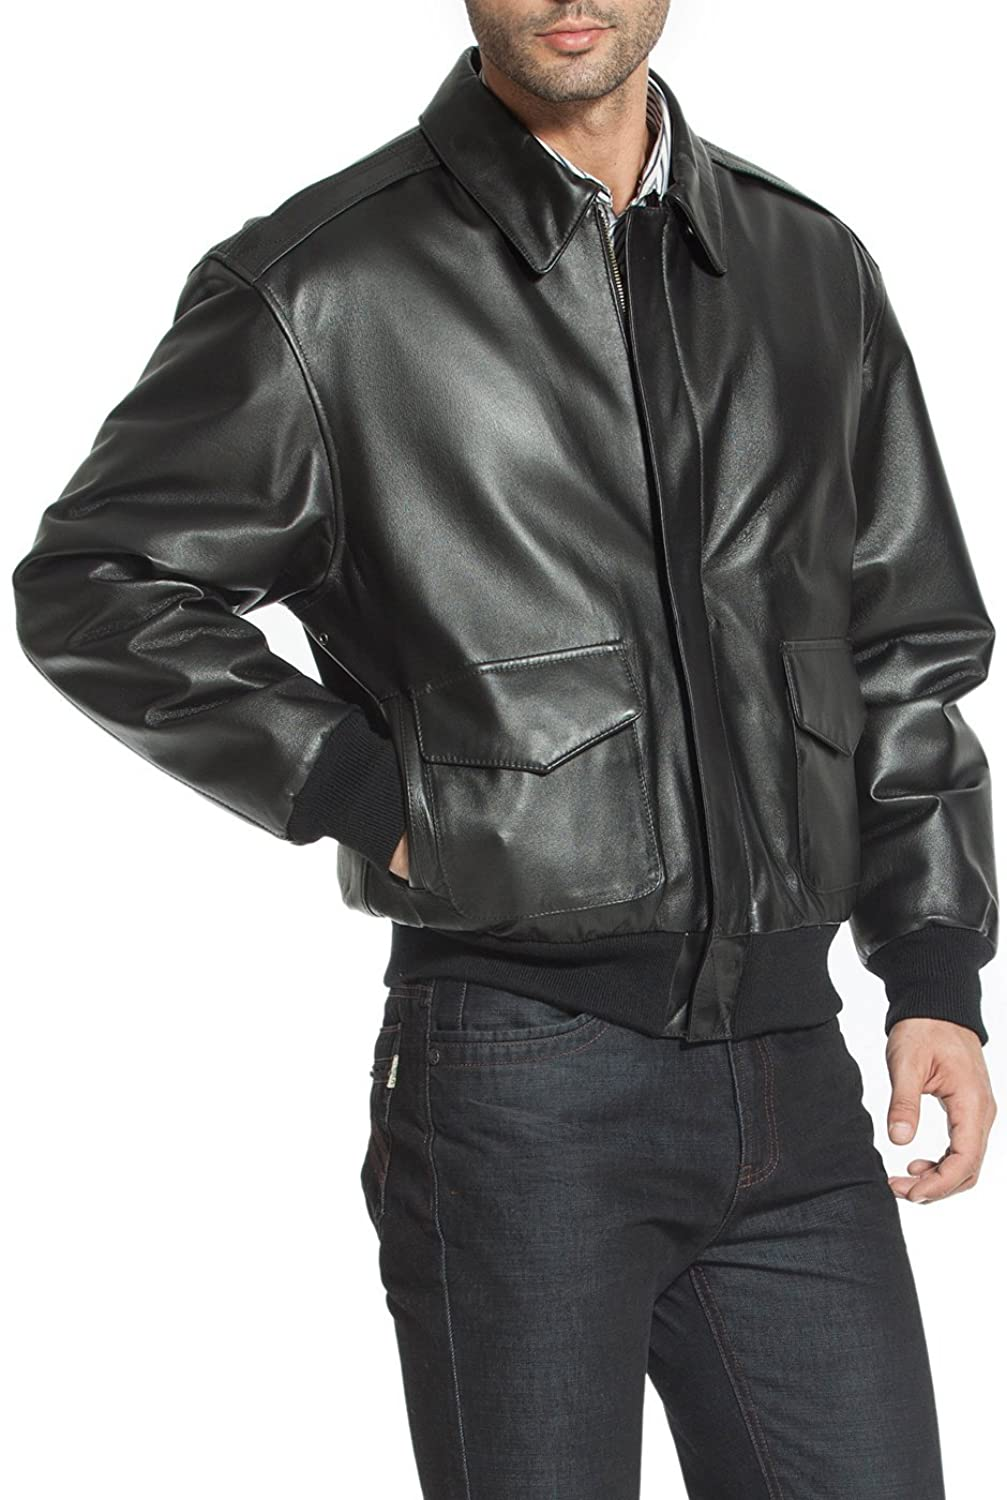 Leather jacket repair vancouver - Landing Leathers Men S Air Force A 2 Leather Flight Bomber Jacket At Amazon Men S Clothing Store